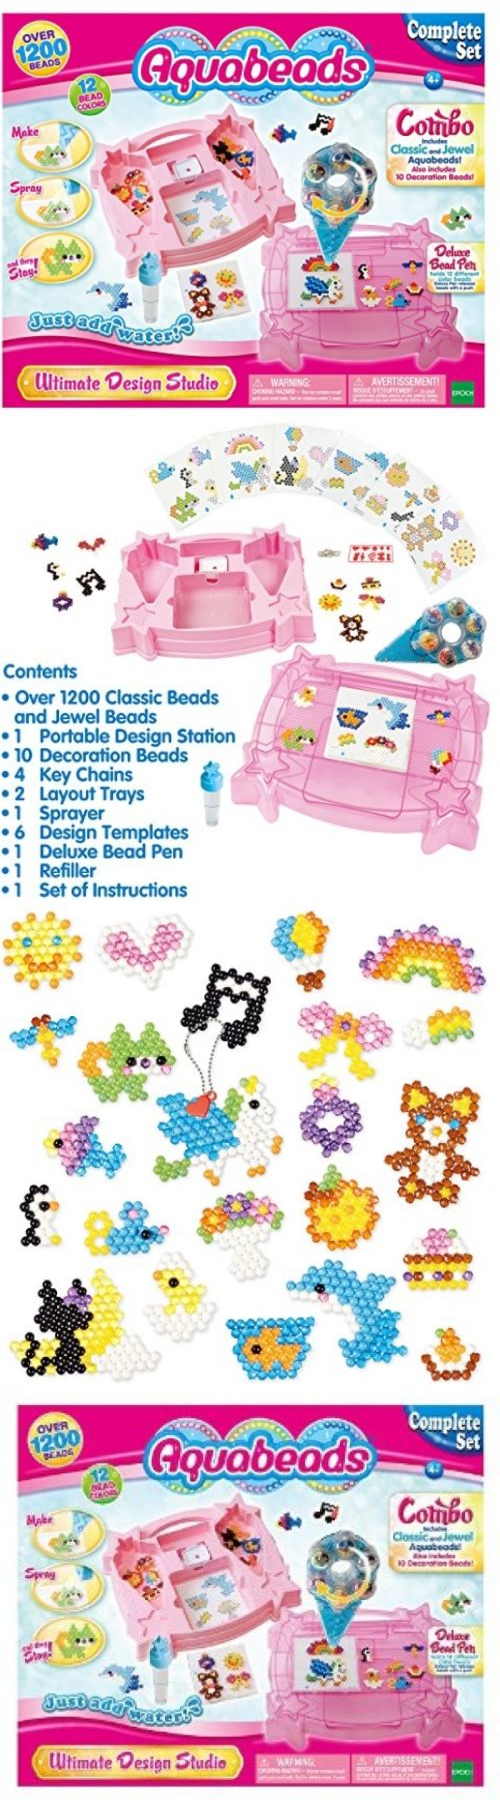 Bead Kits 134567 Aquabeads Ultimate Design Studio Playset Buy It